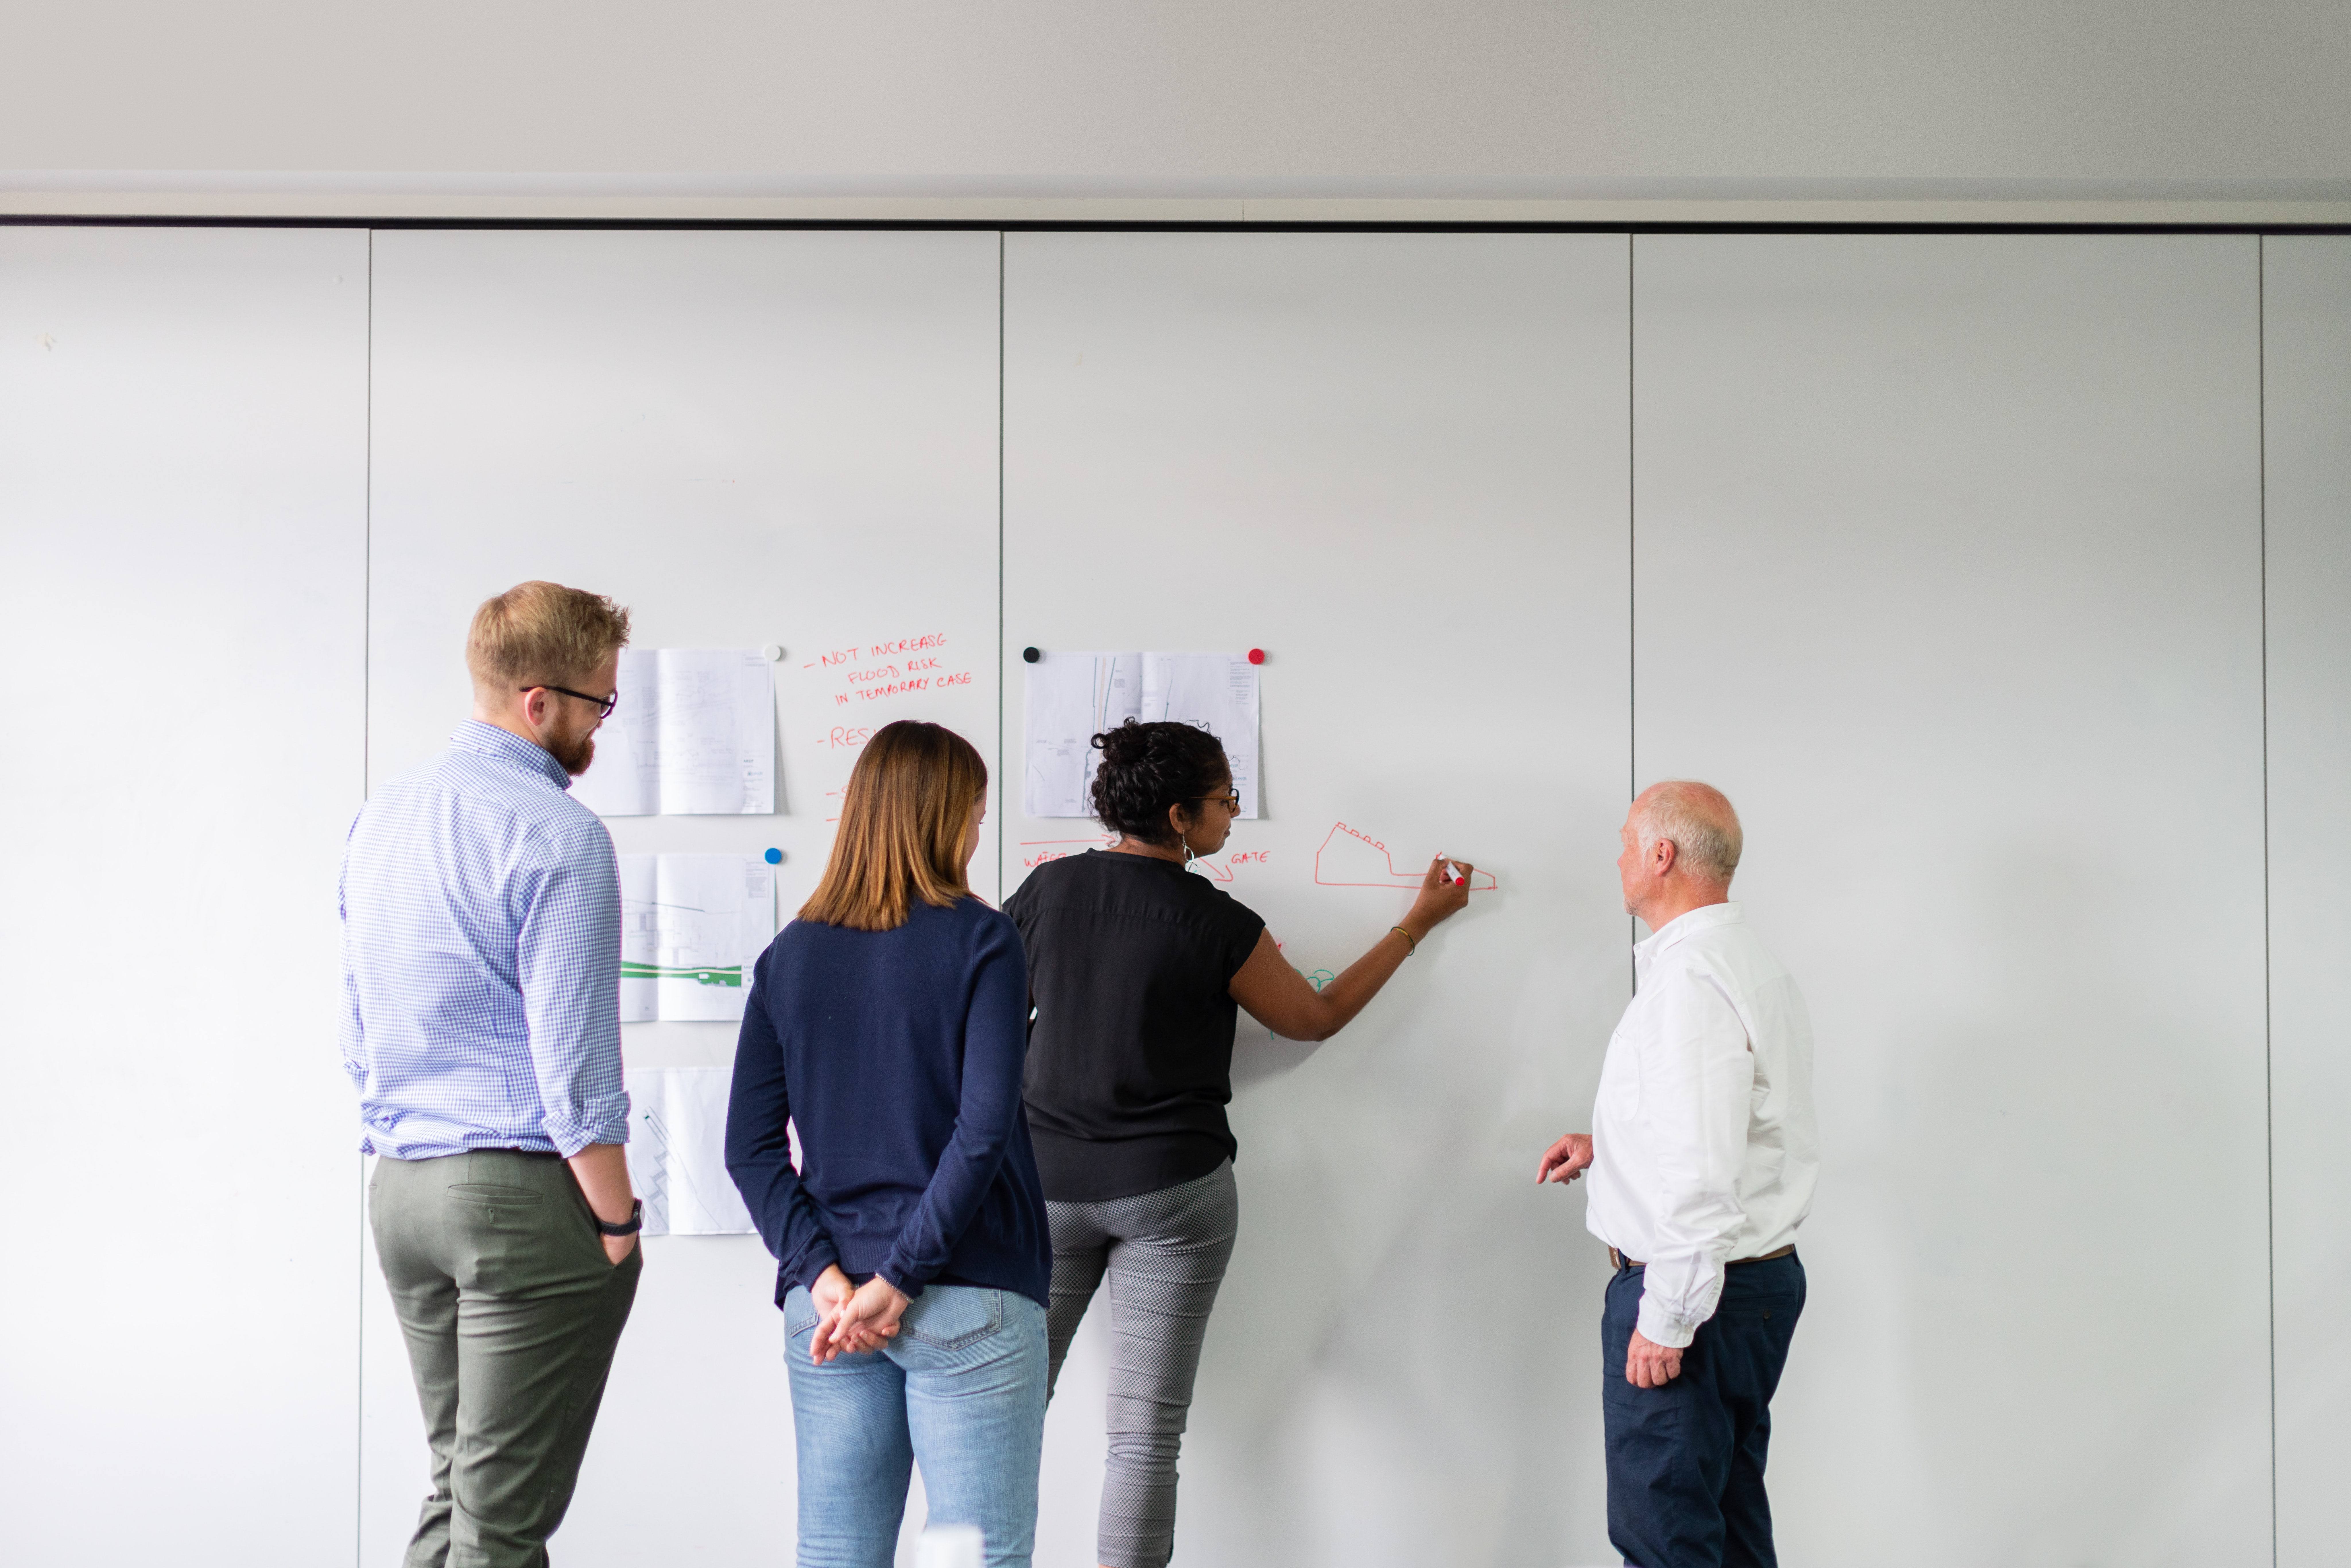 Group of colleagues standing at a whiteboard